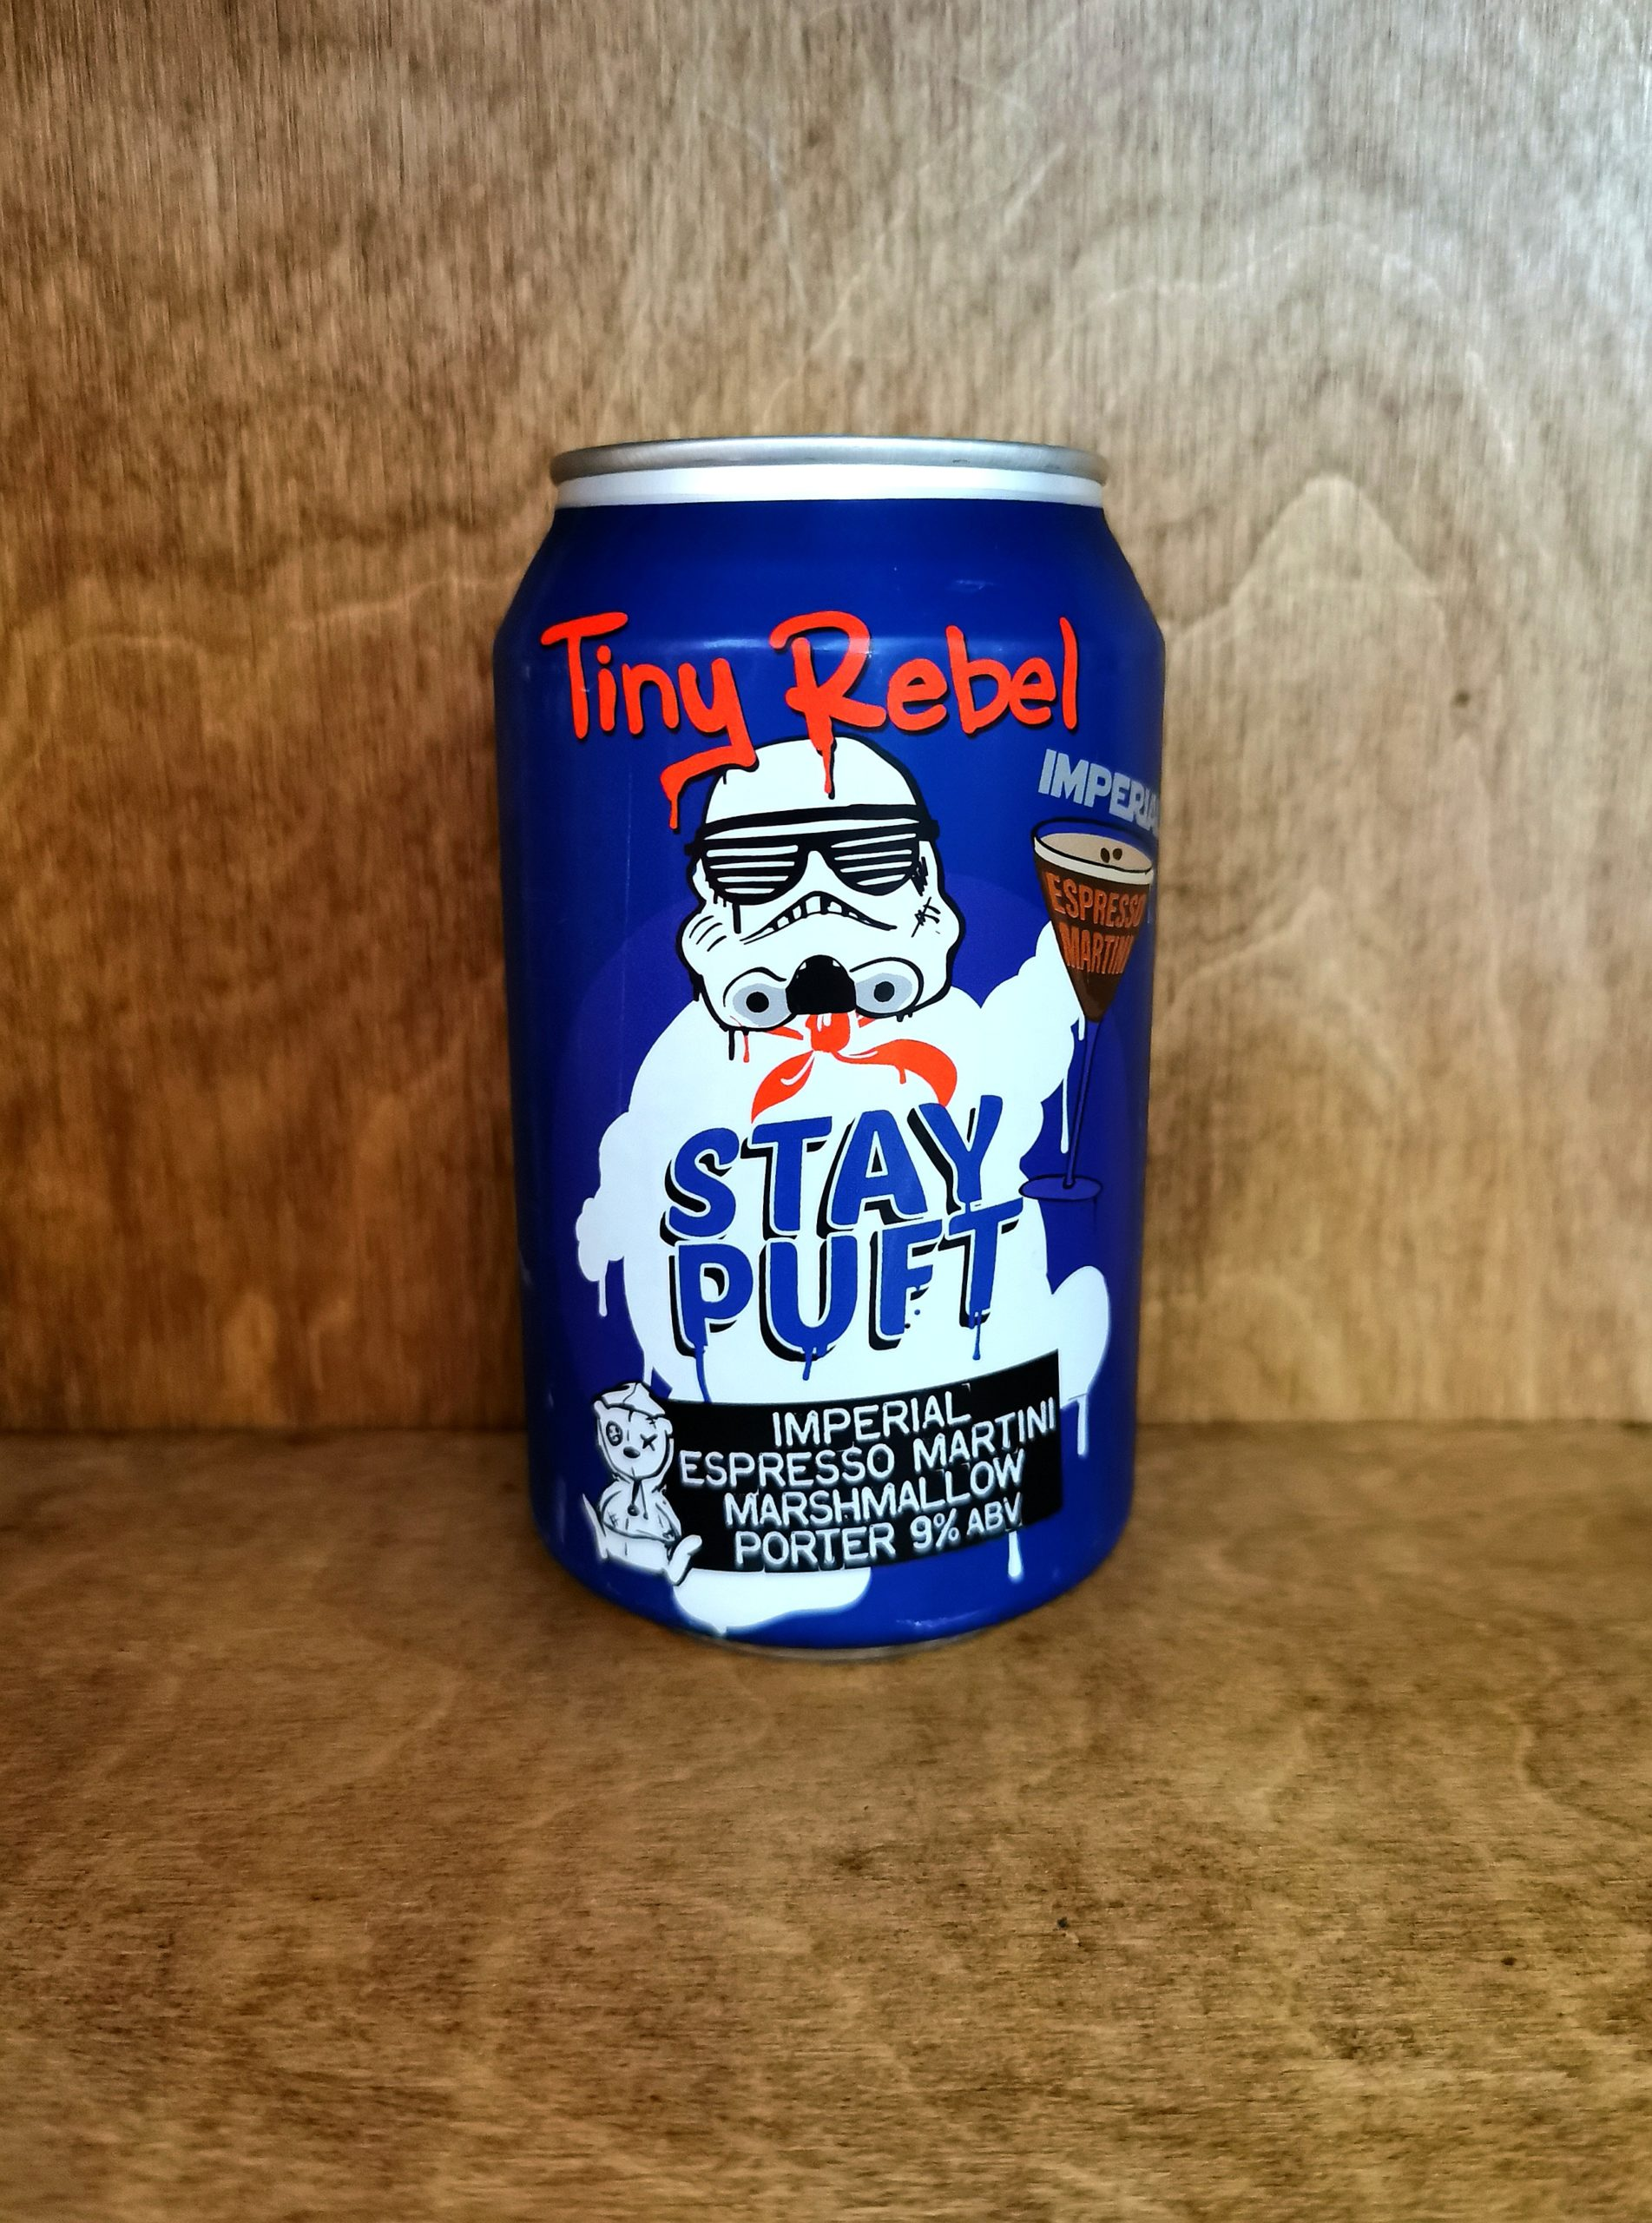 Tiny Rebel Stay Puft Imperial Espresso Martini Marshmallow Porter - The Duck Pond